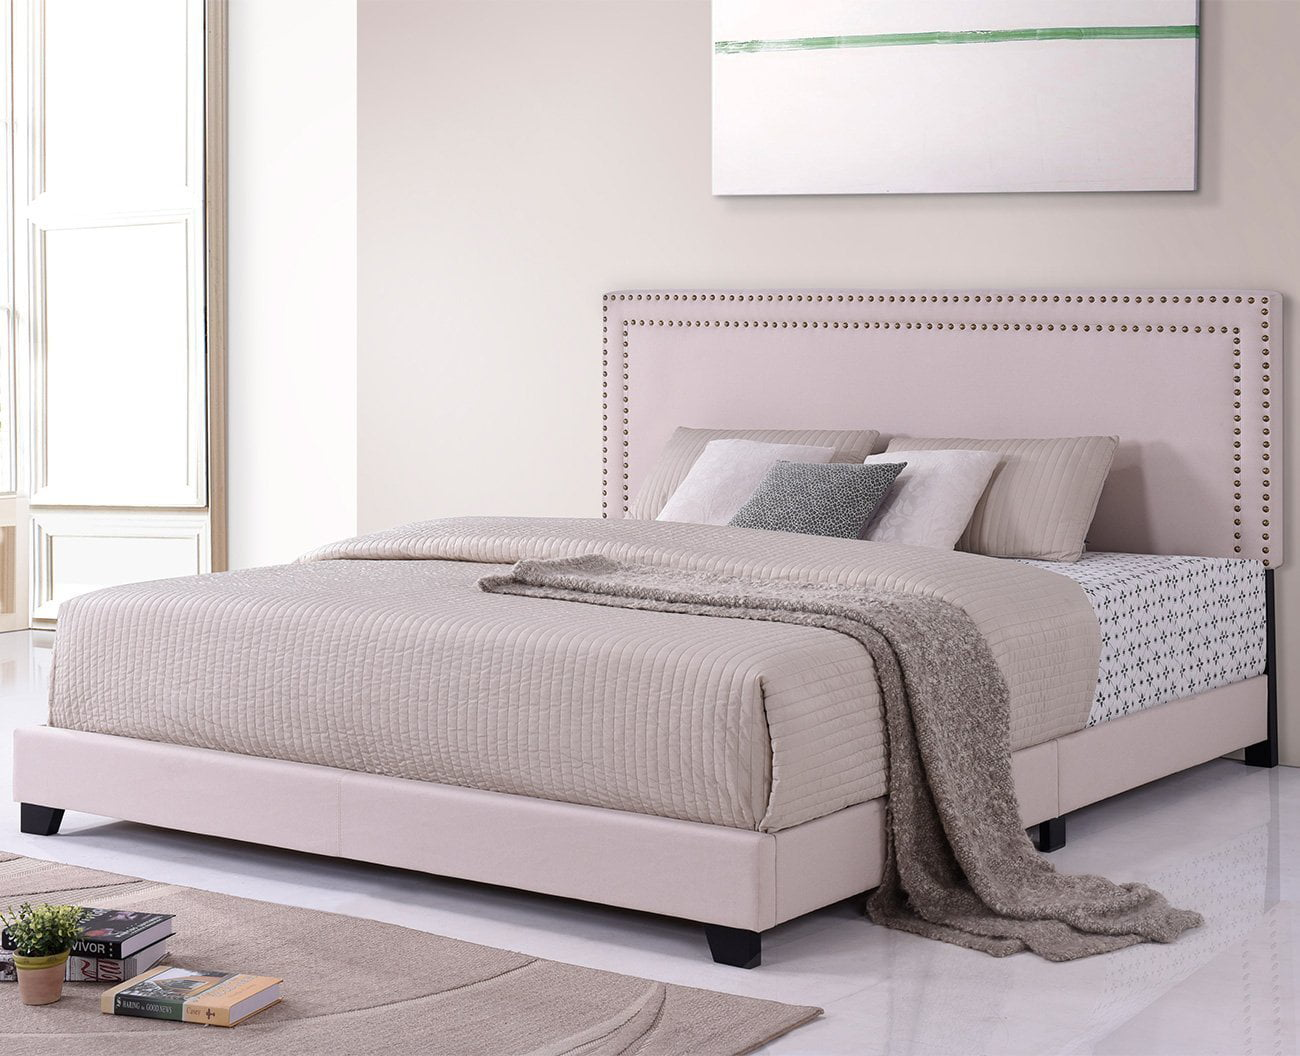 Picture of: Clearance King Platform Bed Frame Urhomepro Modern Upholstered Platform Bed With Headboard Beige Heavy Duty Bed Frame With Wood Slat Support For Adults Teens Children No Box Spring Required I7688 Walmart Com